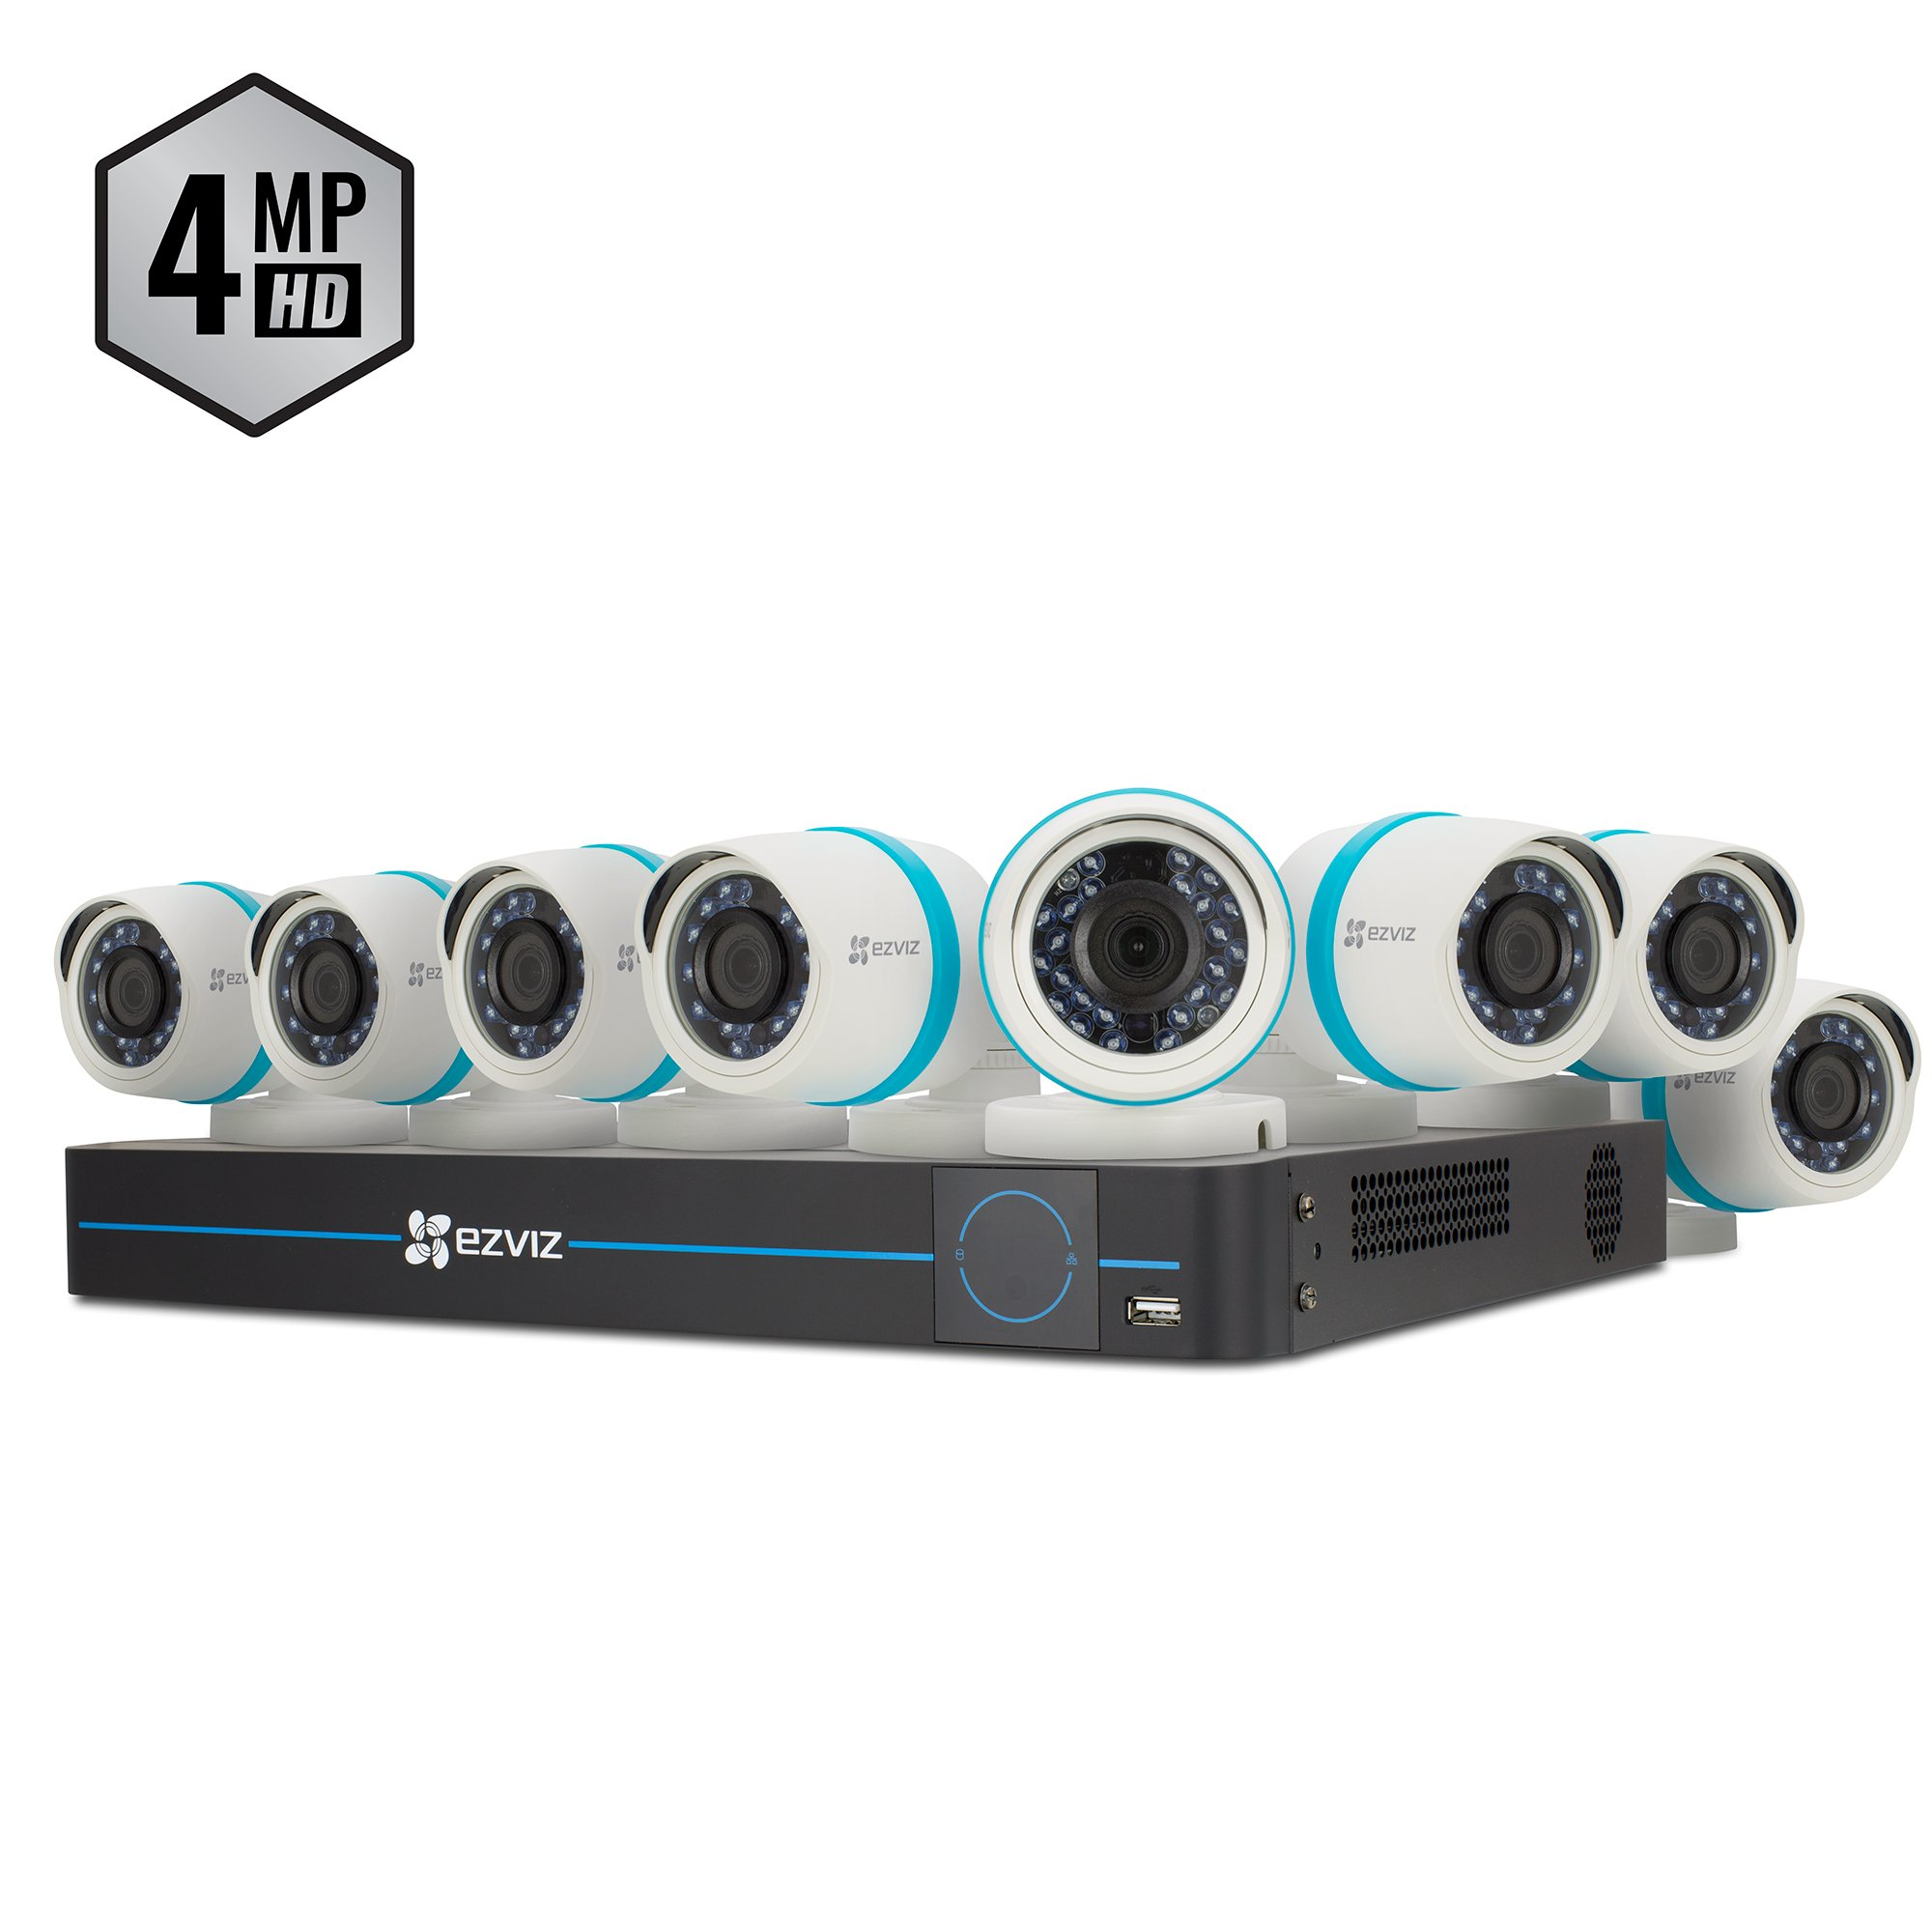 EZVIZ Outdoor 4MP IP PoE Video Security Surveillance System, 8 Weatherproof HD Cameras, 16 Channel 3TB NVR Storage, 100ft Night Vision, Motion Tracking